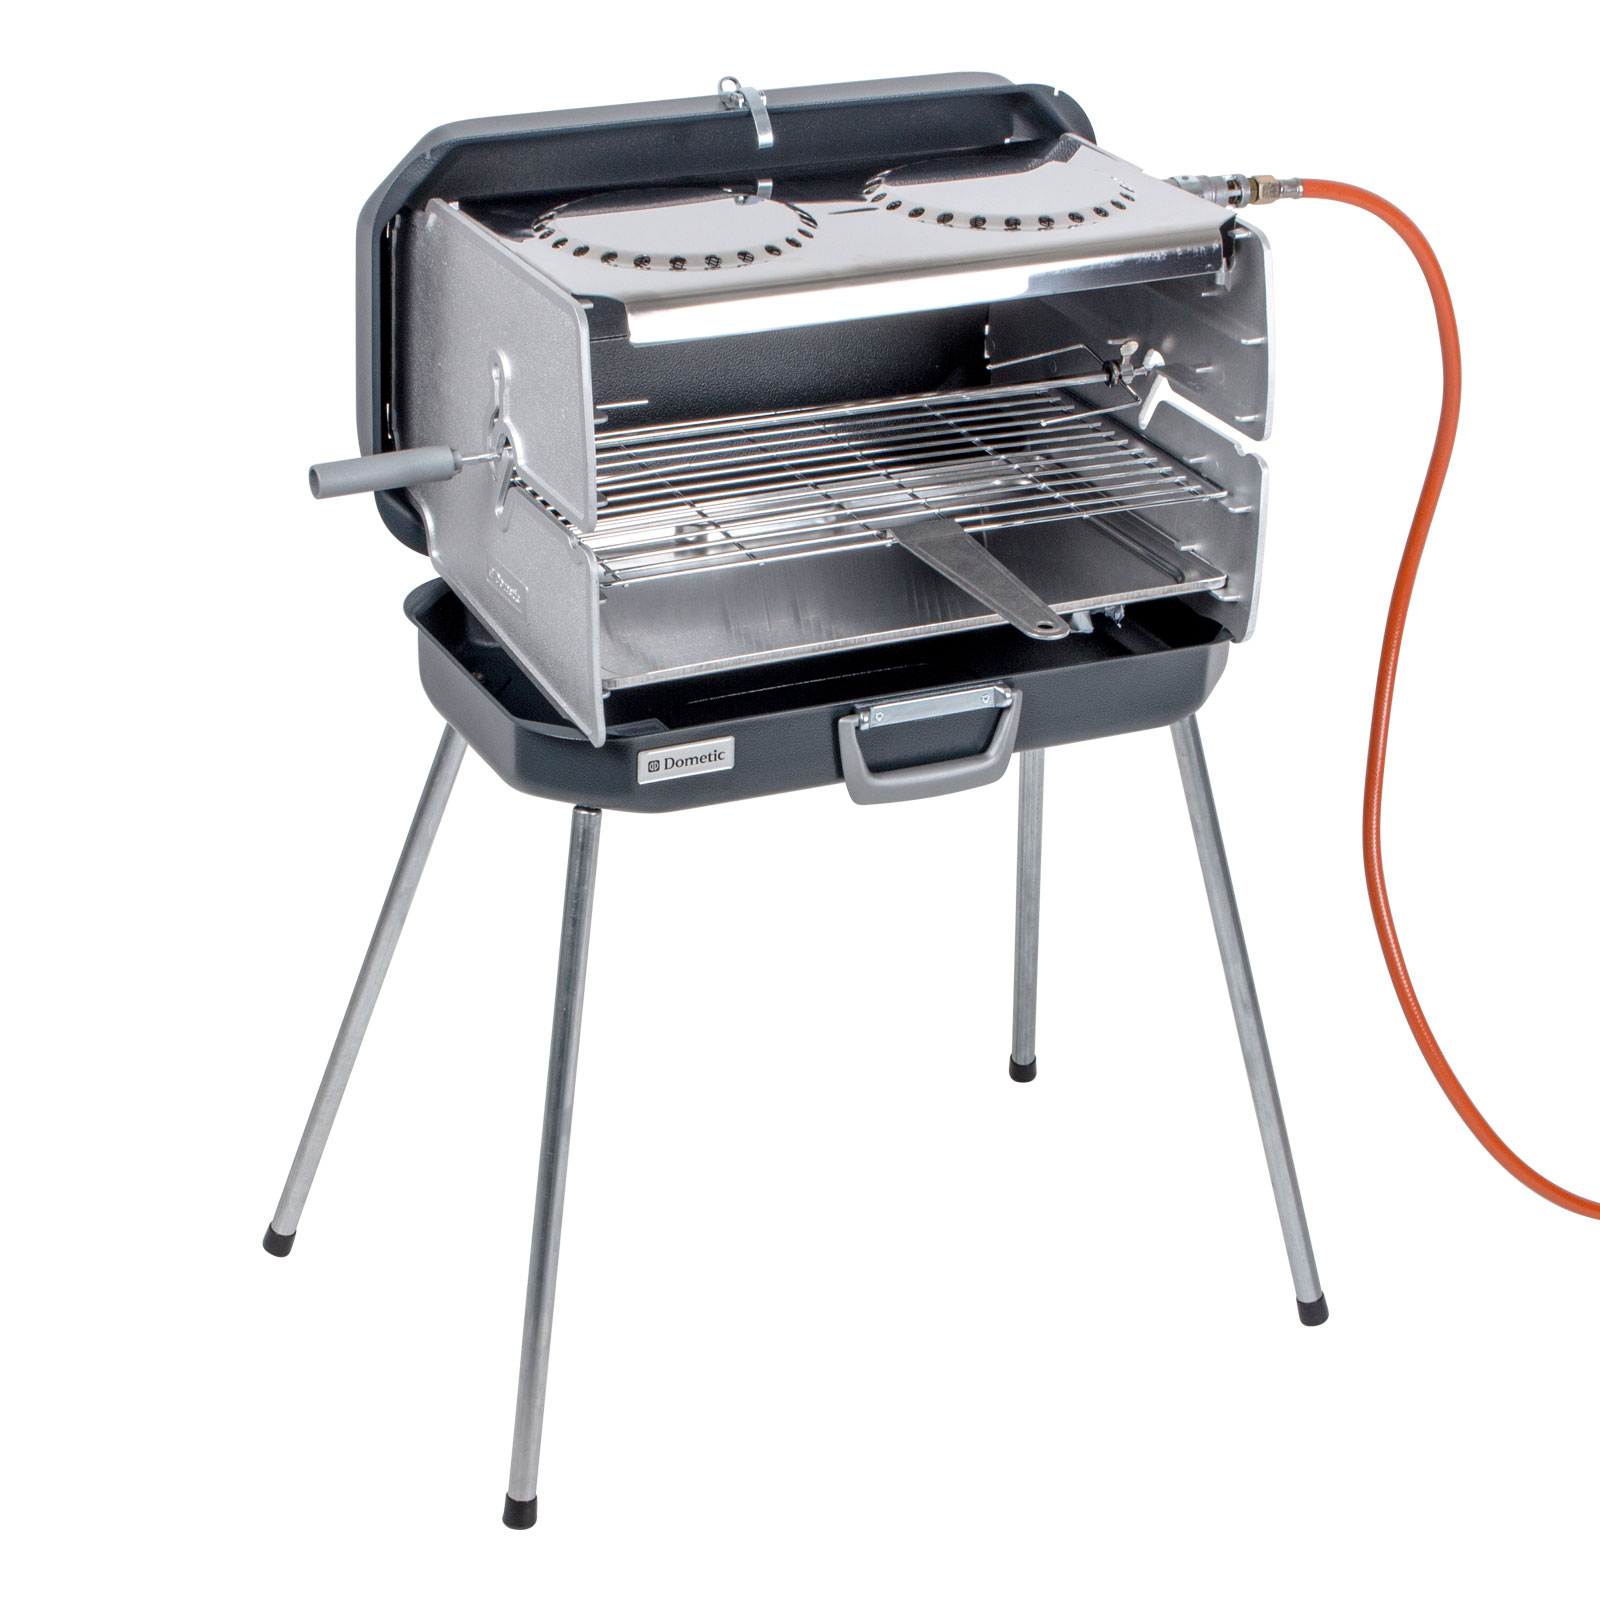 Dometic Koffer Gasgrill Classic 2, 30 mbar, 4,3 KW, Edelstahl, inkl Schlauch